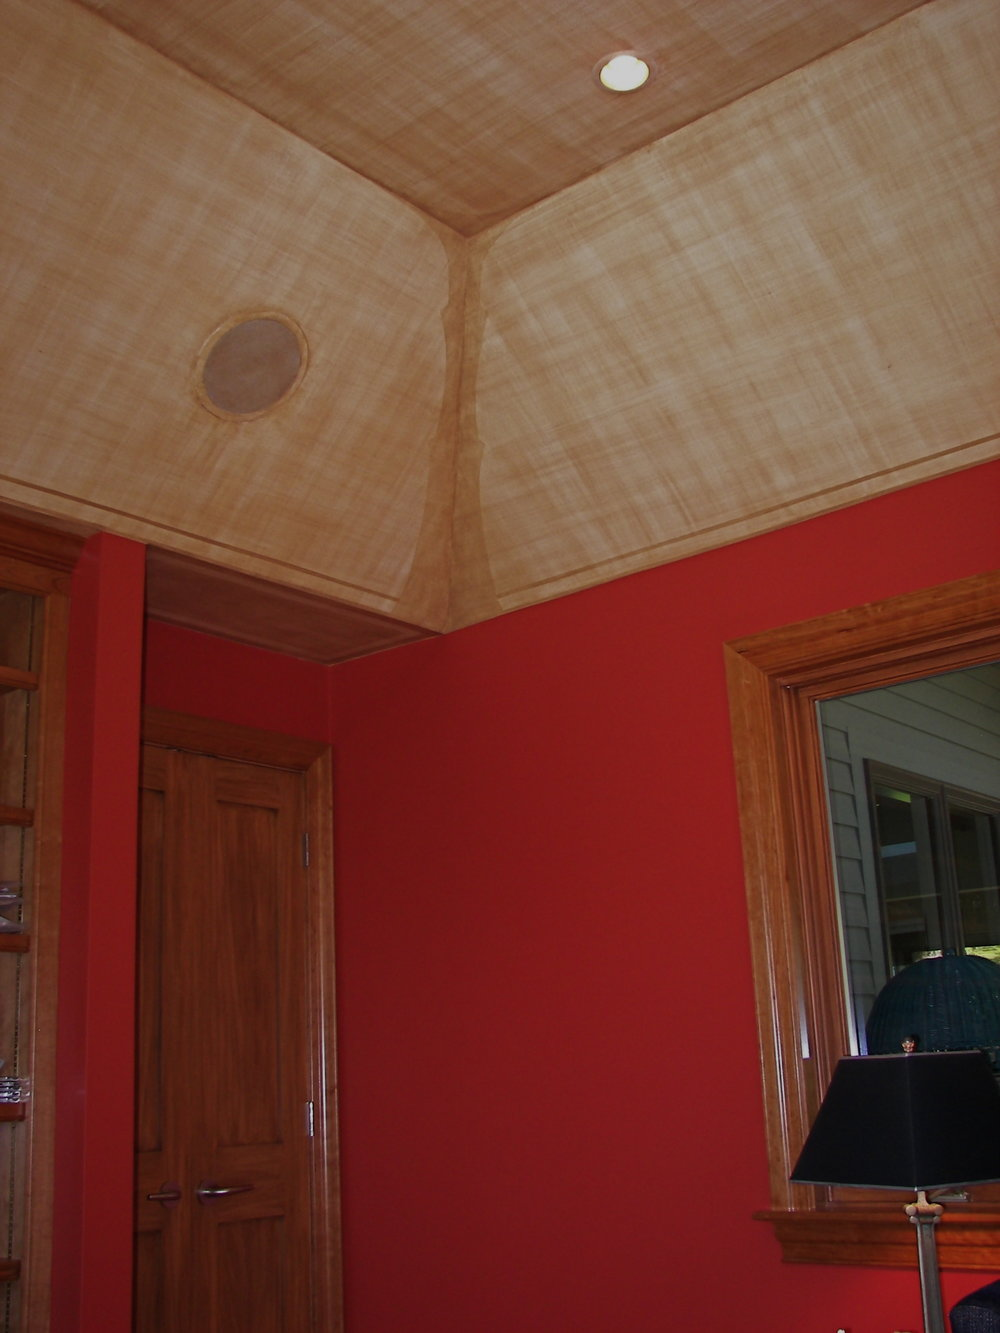 Textured Ceiling